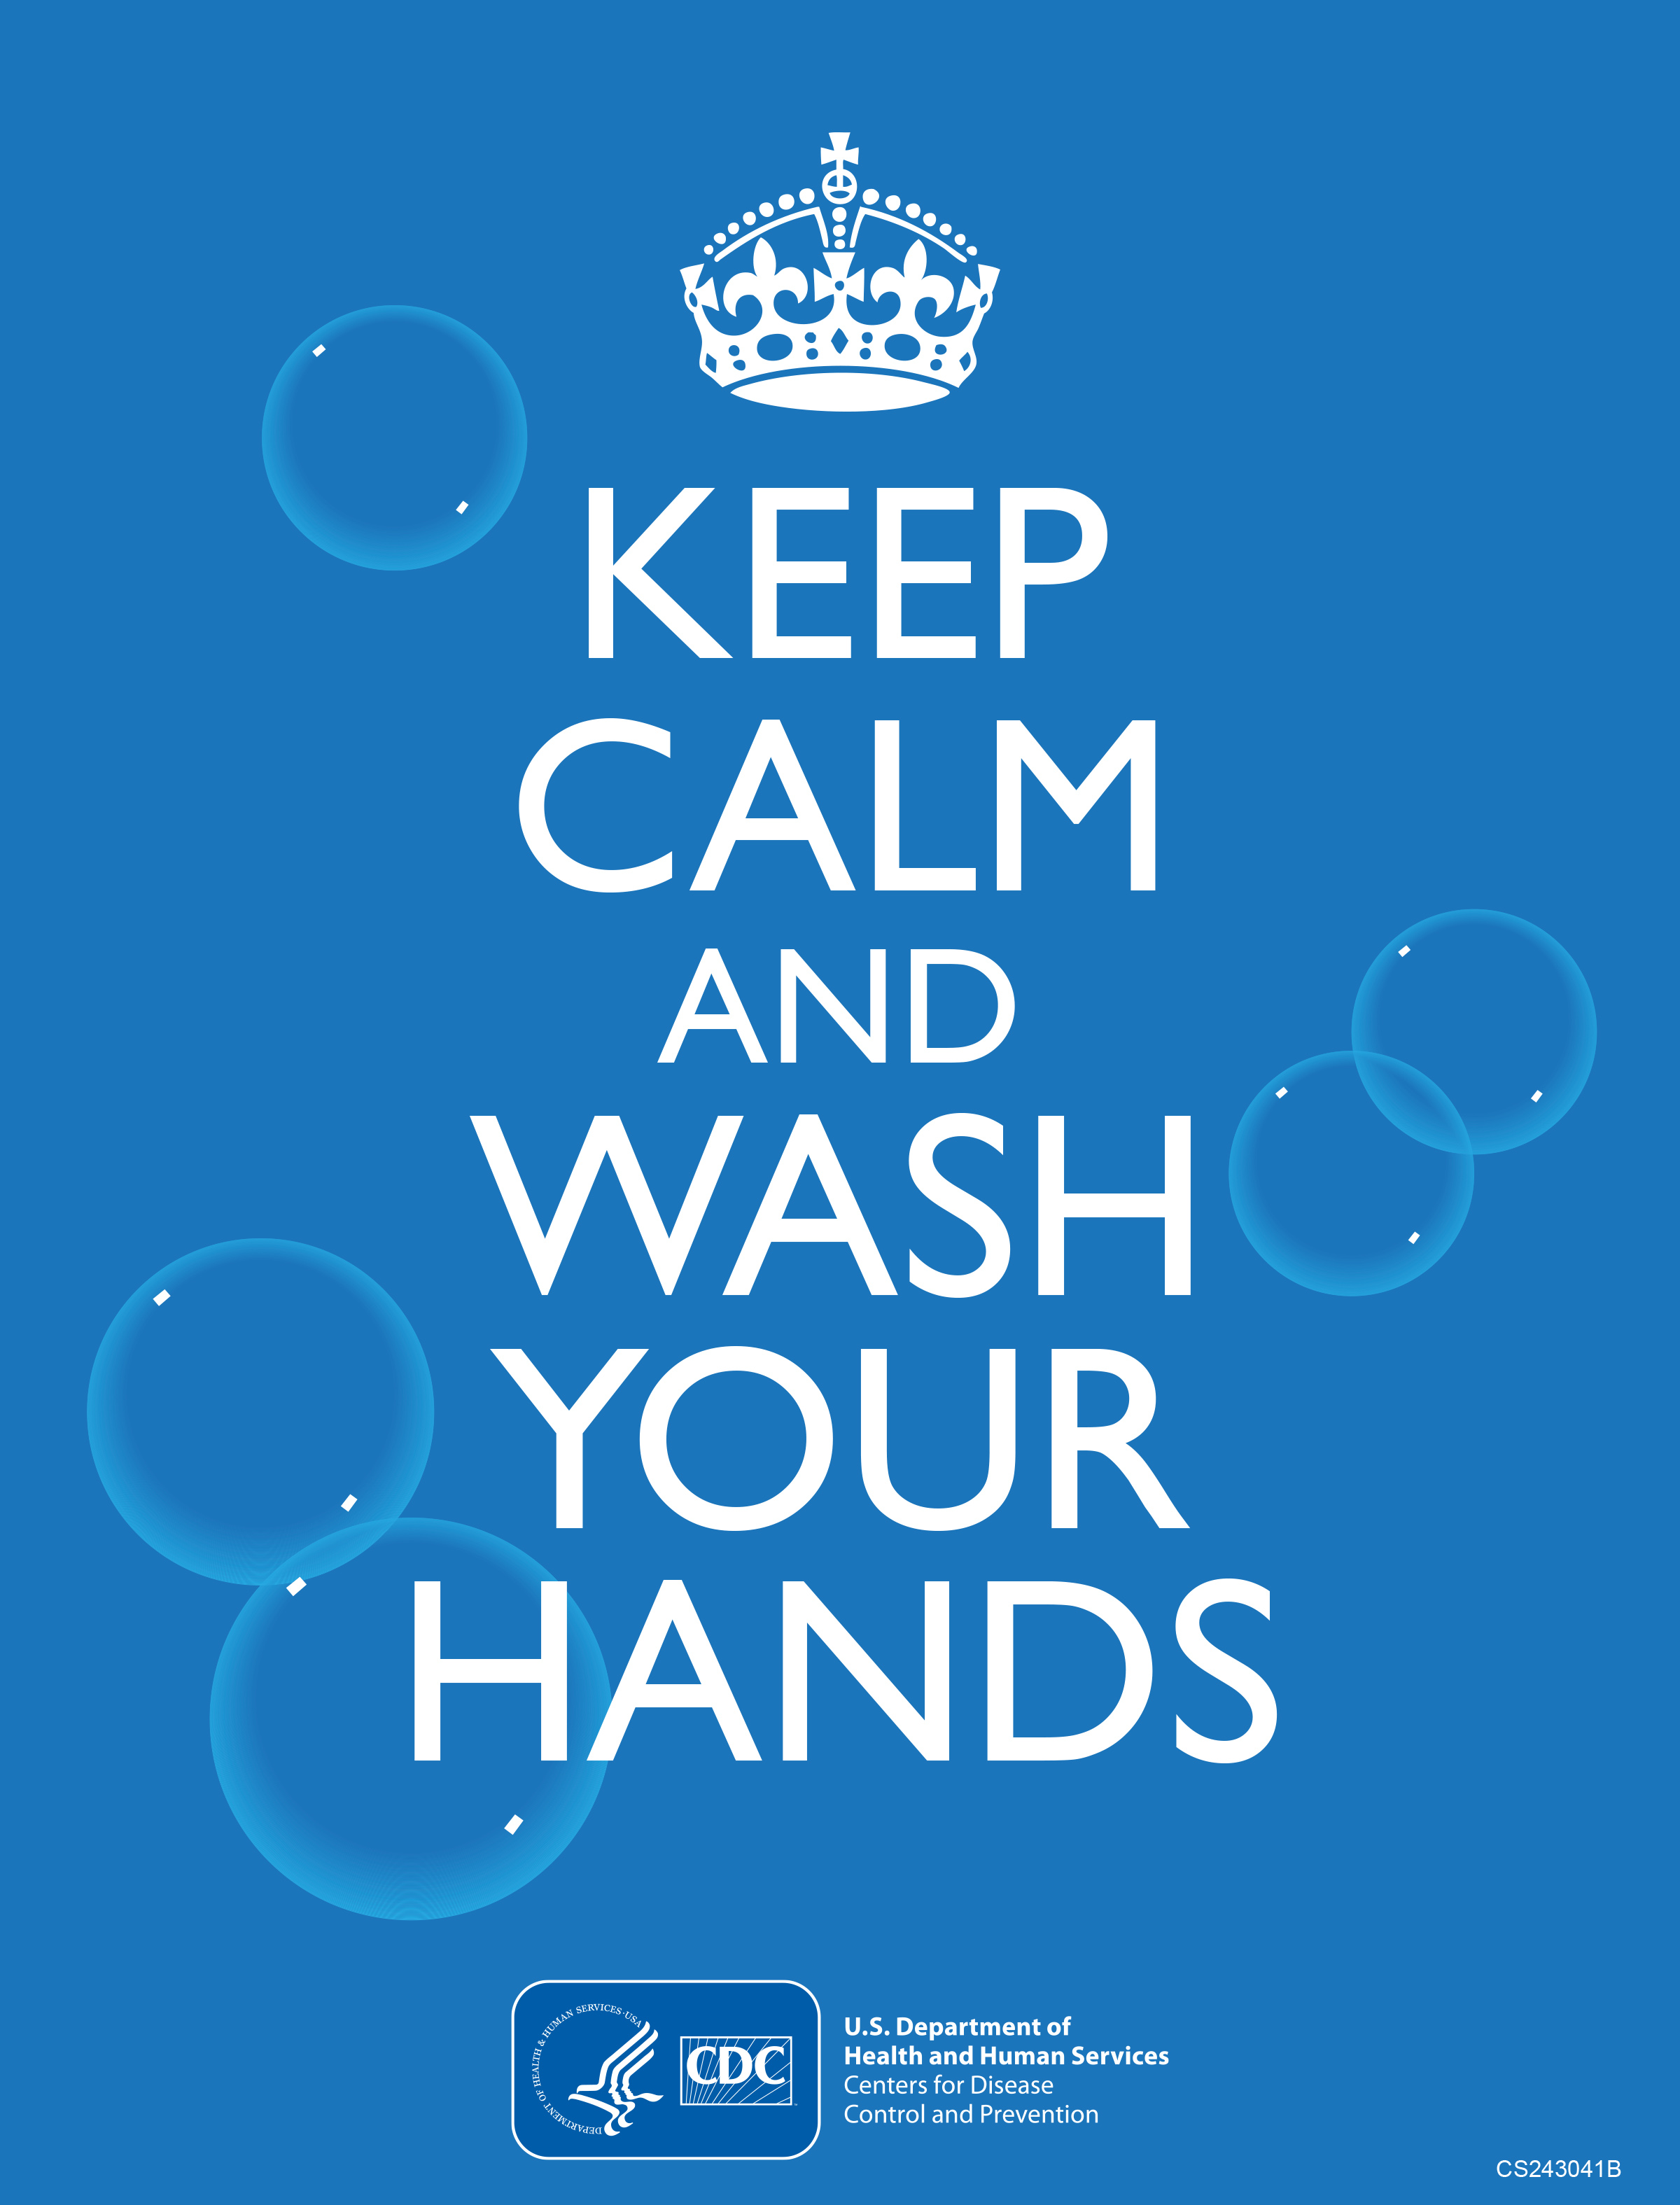 Keep calm and wash your hands graphic